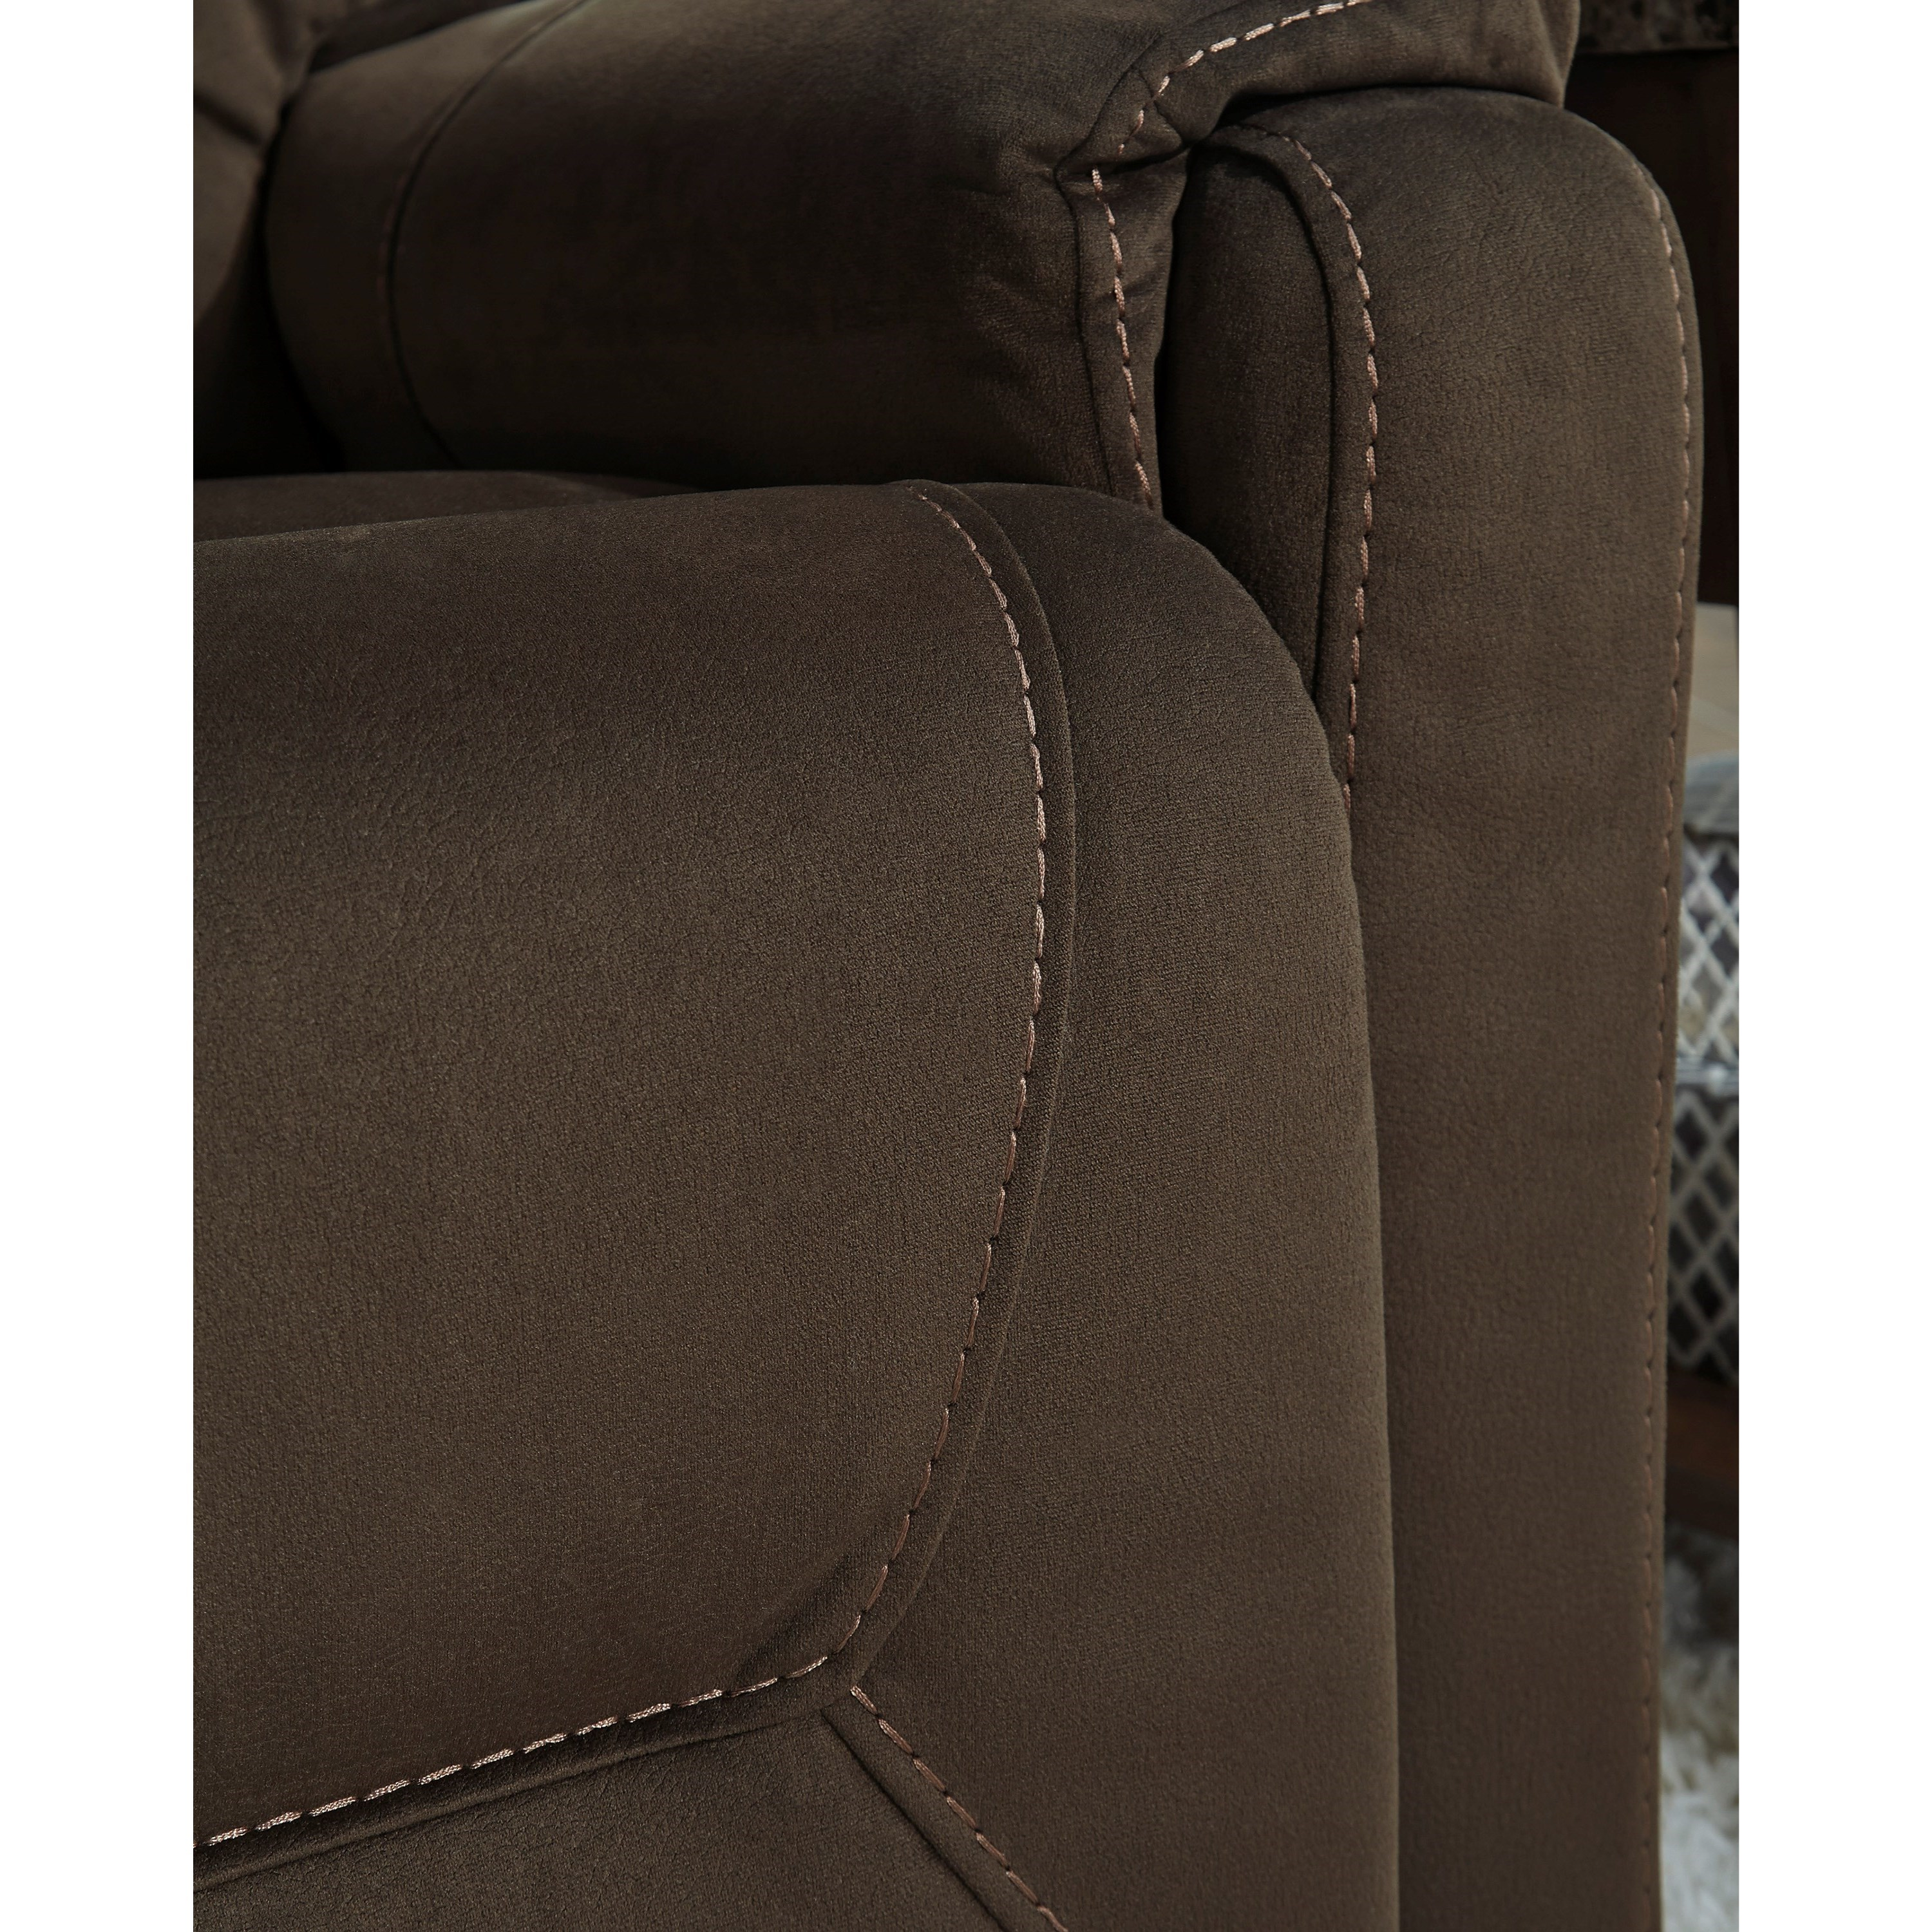 ashley furniture lift chair adirondack covers walmart signature design by samir power recliner with